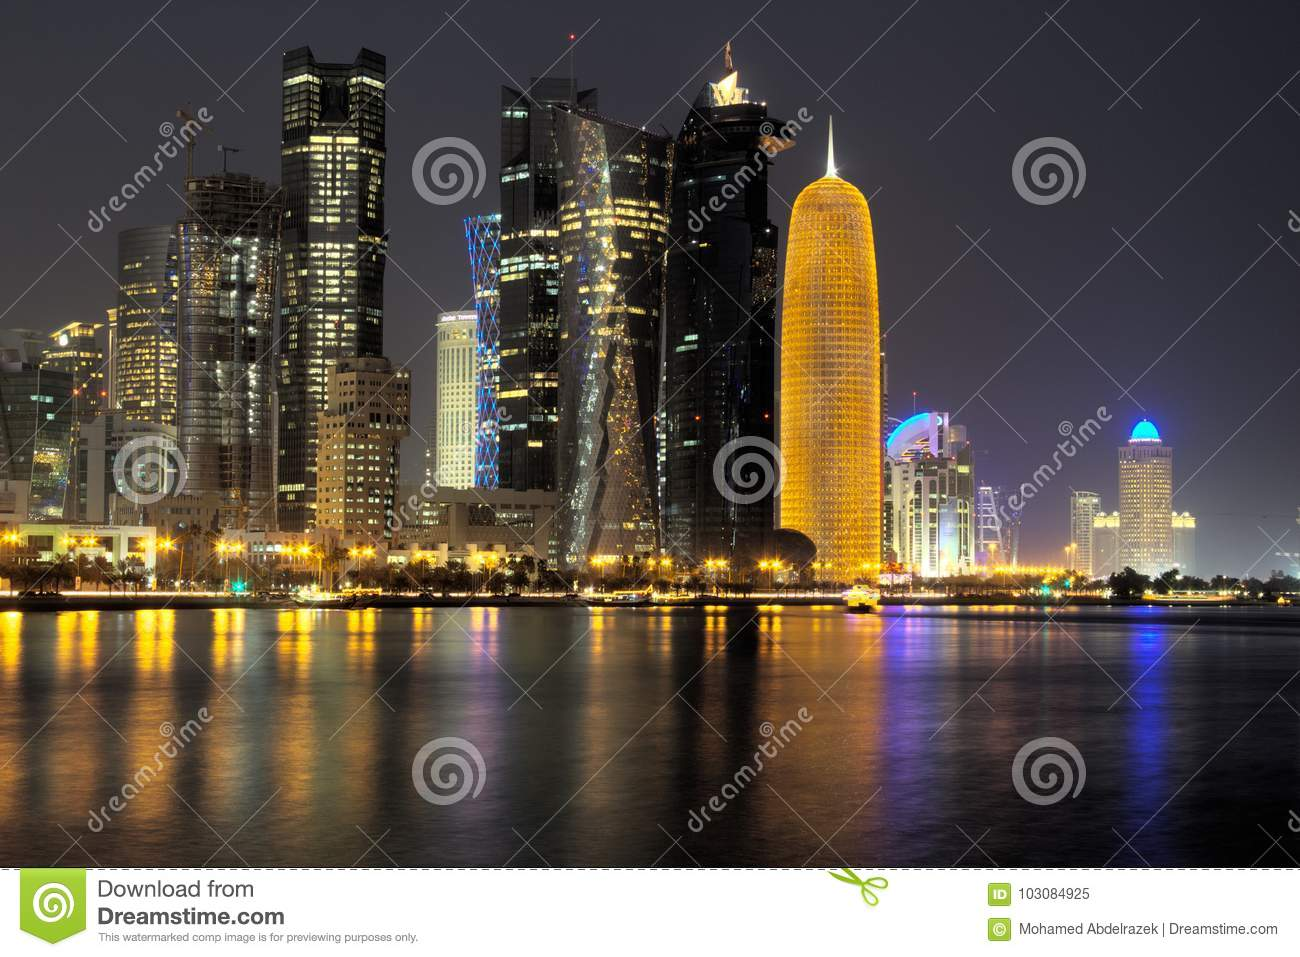 Doha Skyline Lights Wiring Diagrams Need Working Lm3915 Vu Meter Schematic Page 2 Diyaudio In The Evening Editorial Image Of Downtwon Rh Dreamstime Com Bangkok Qatar